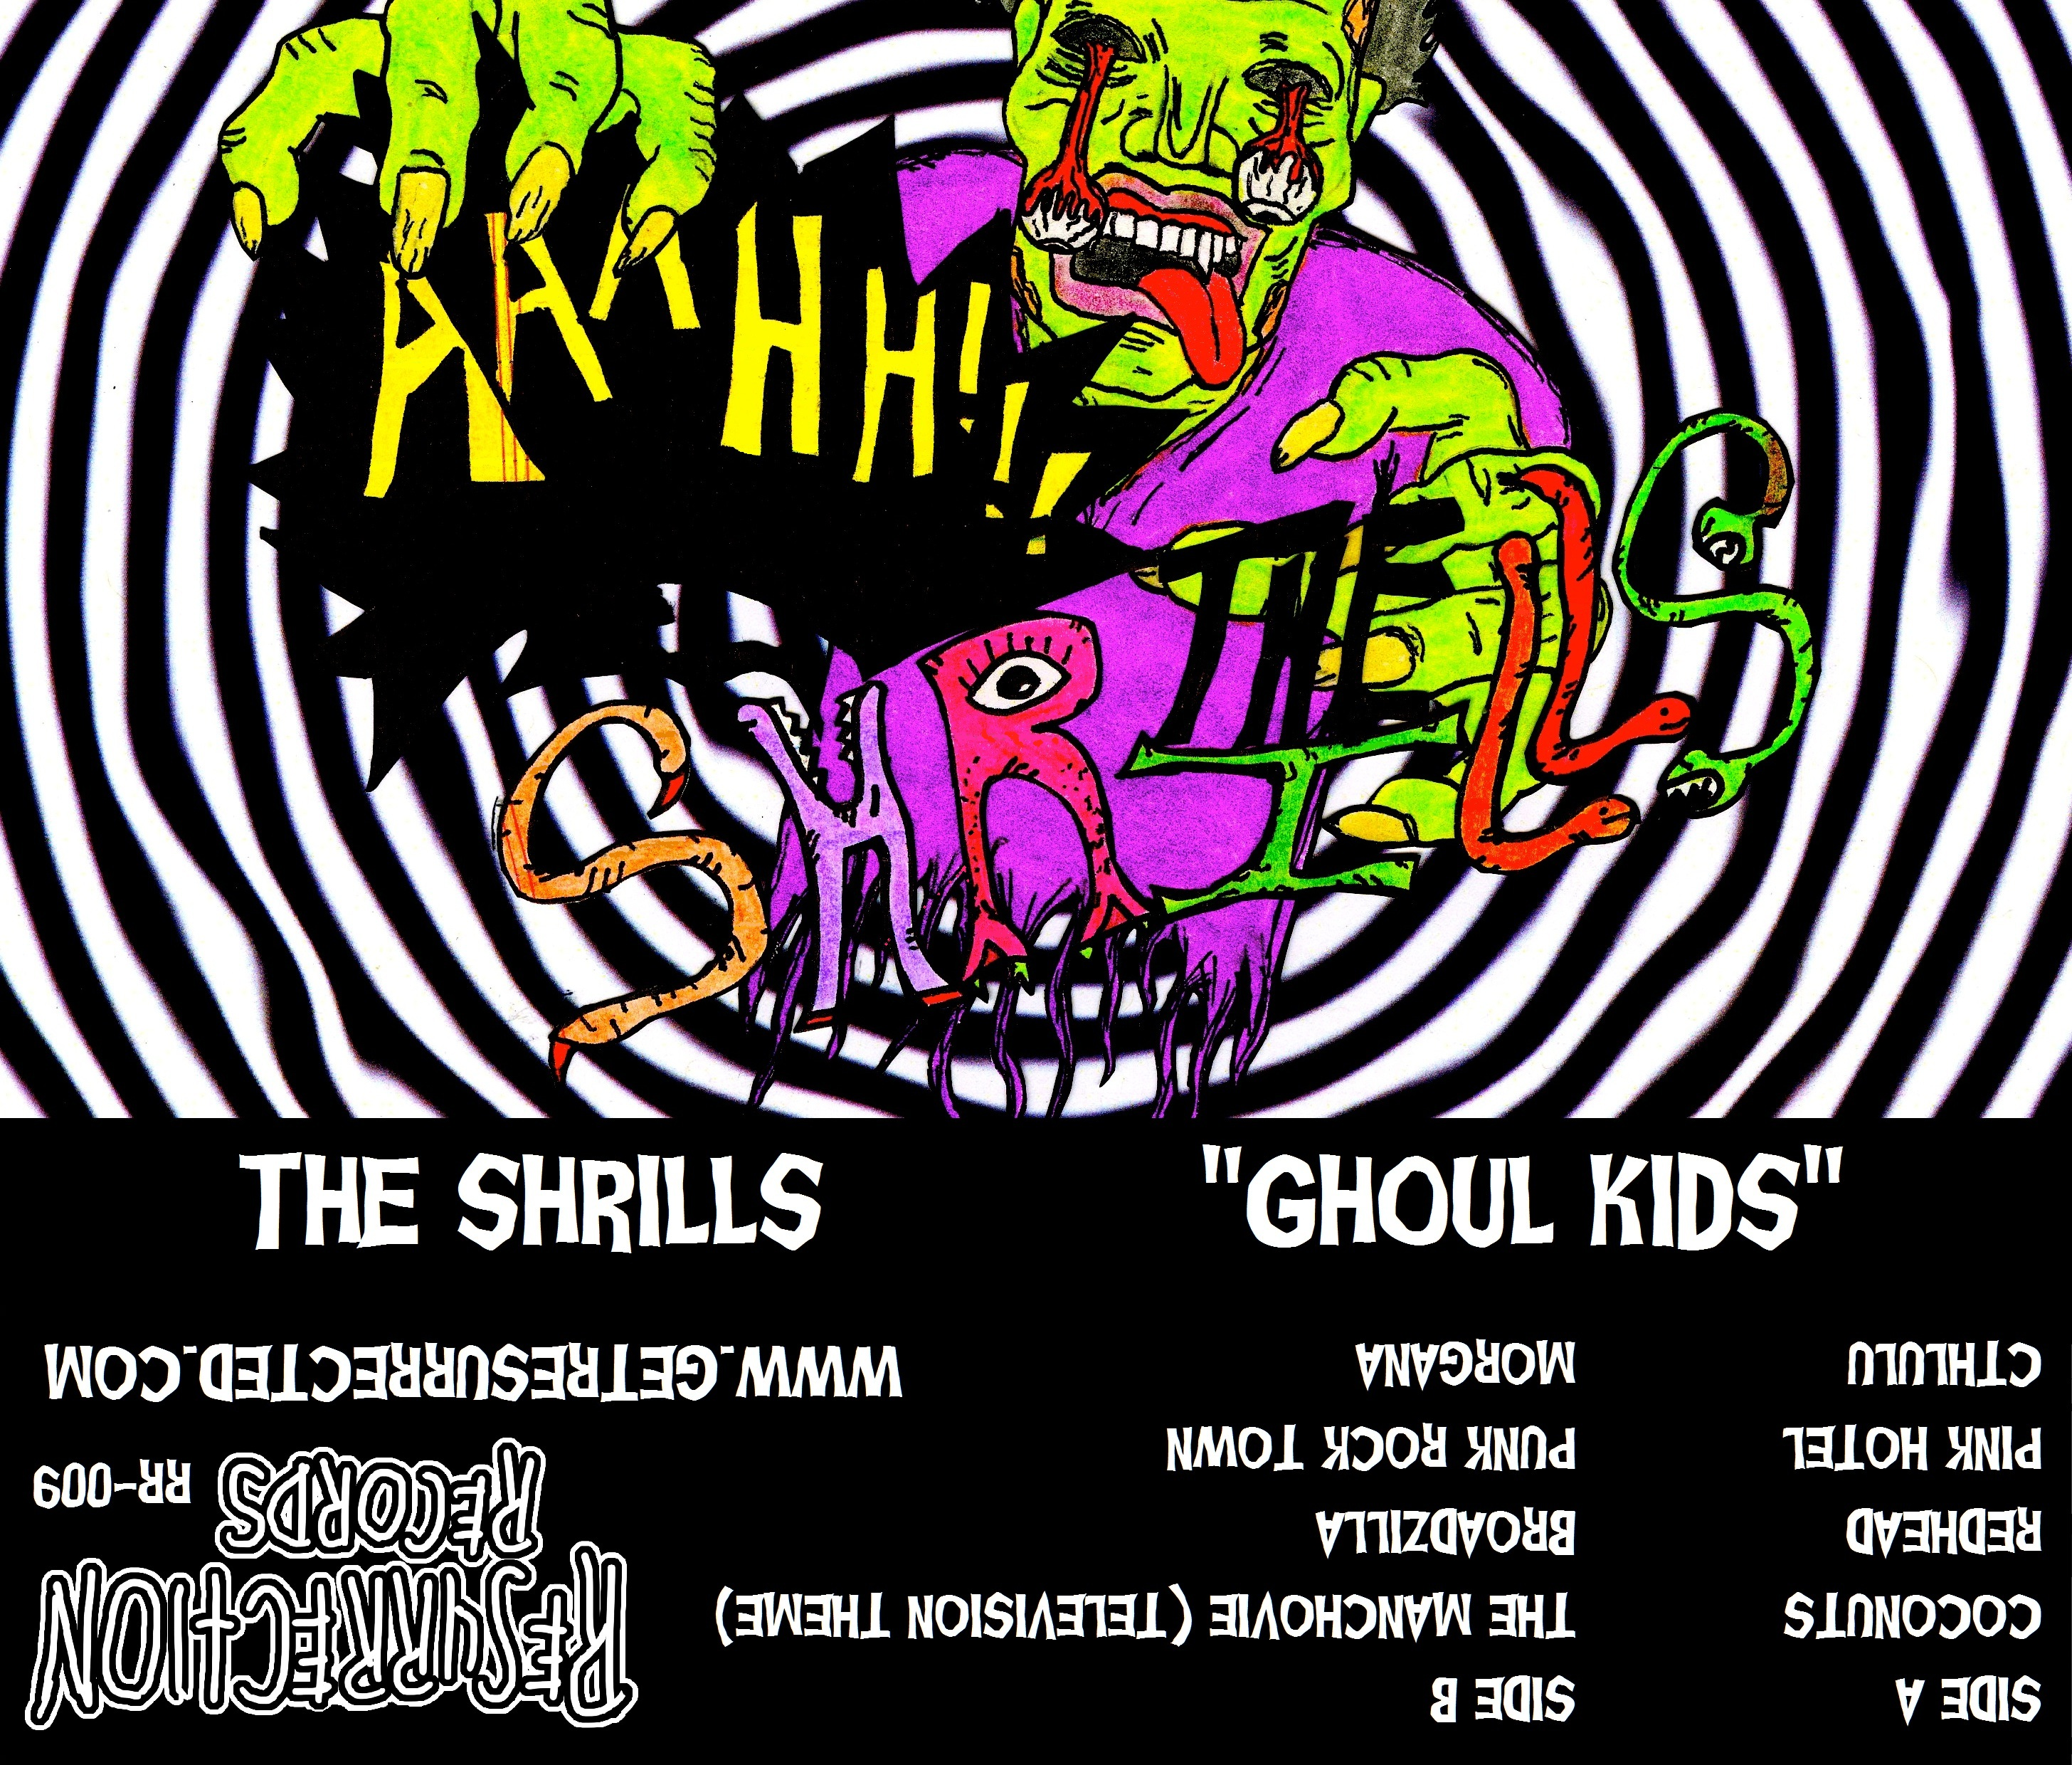 The Shrills- Ghoul Kids Cassette Tape